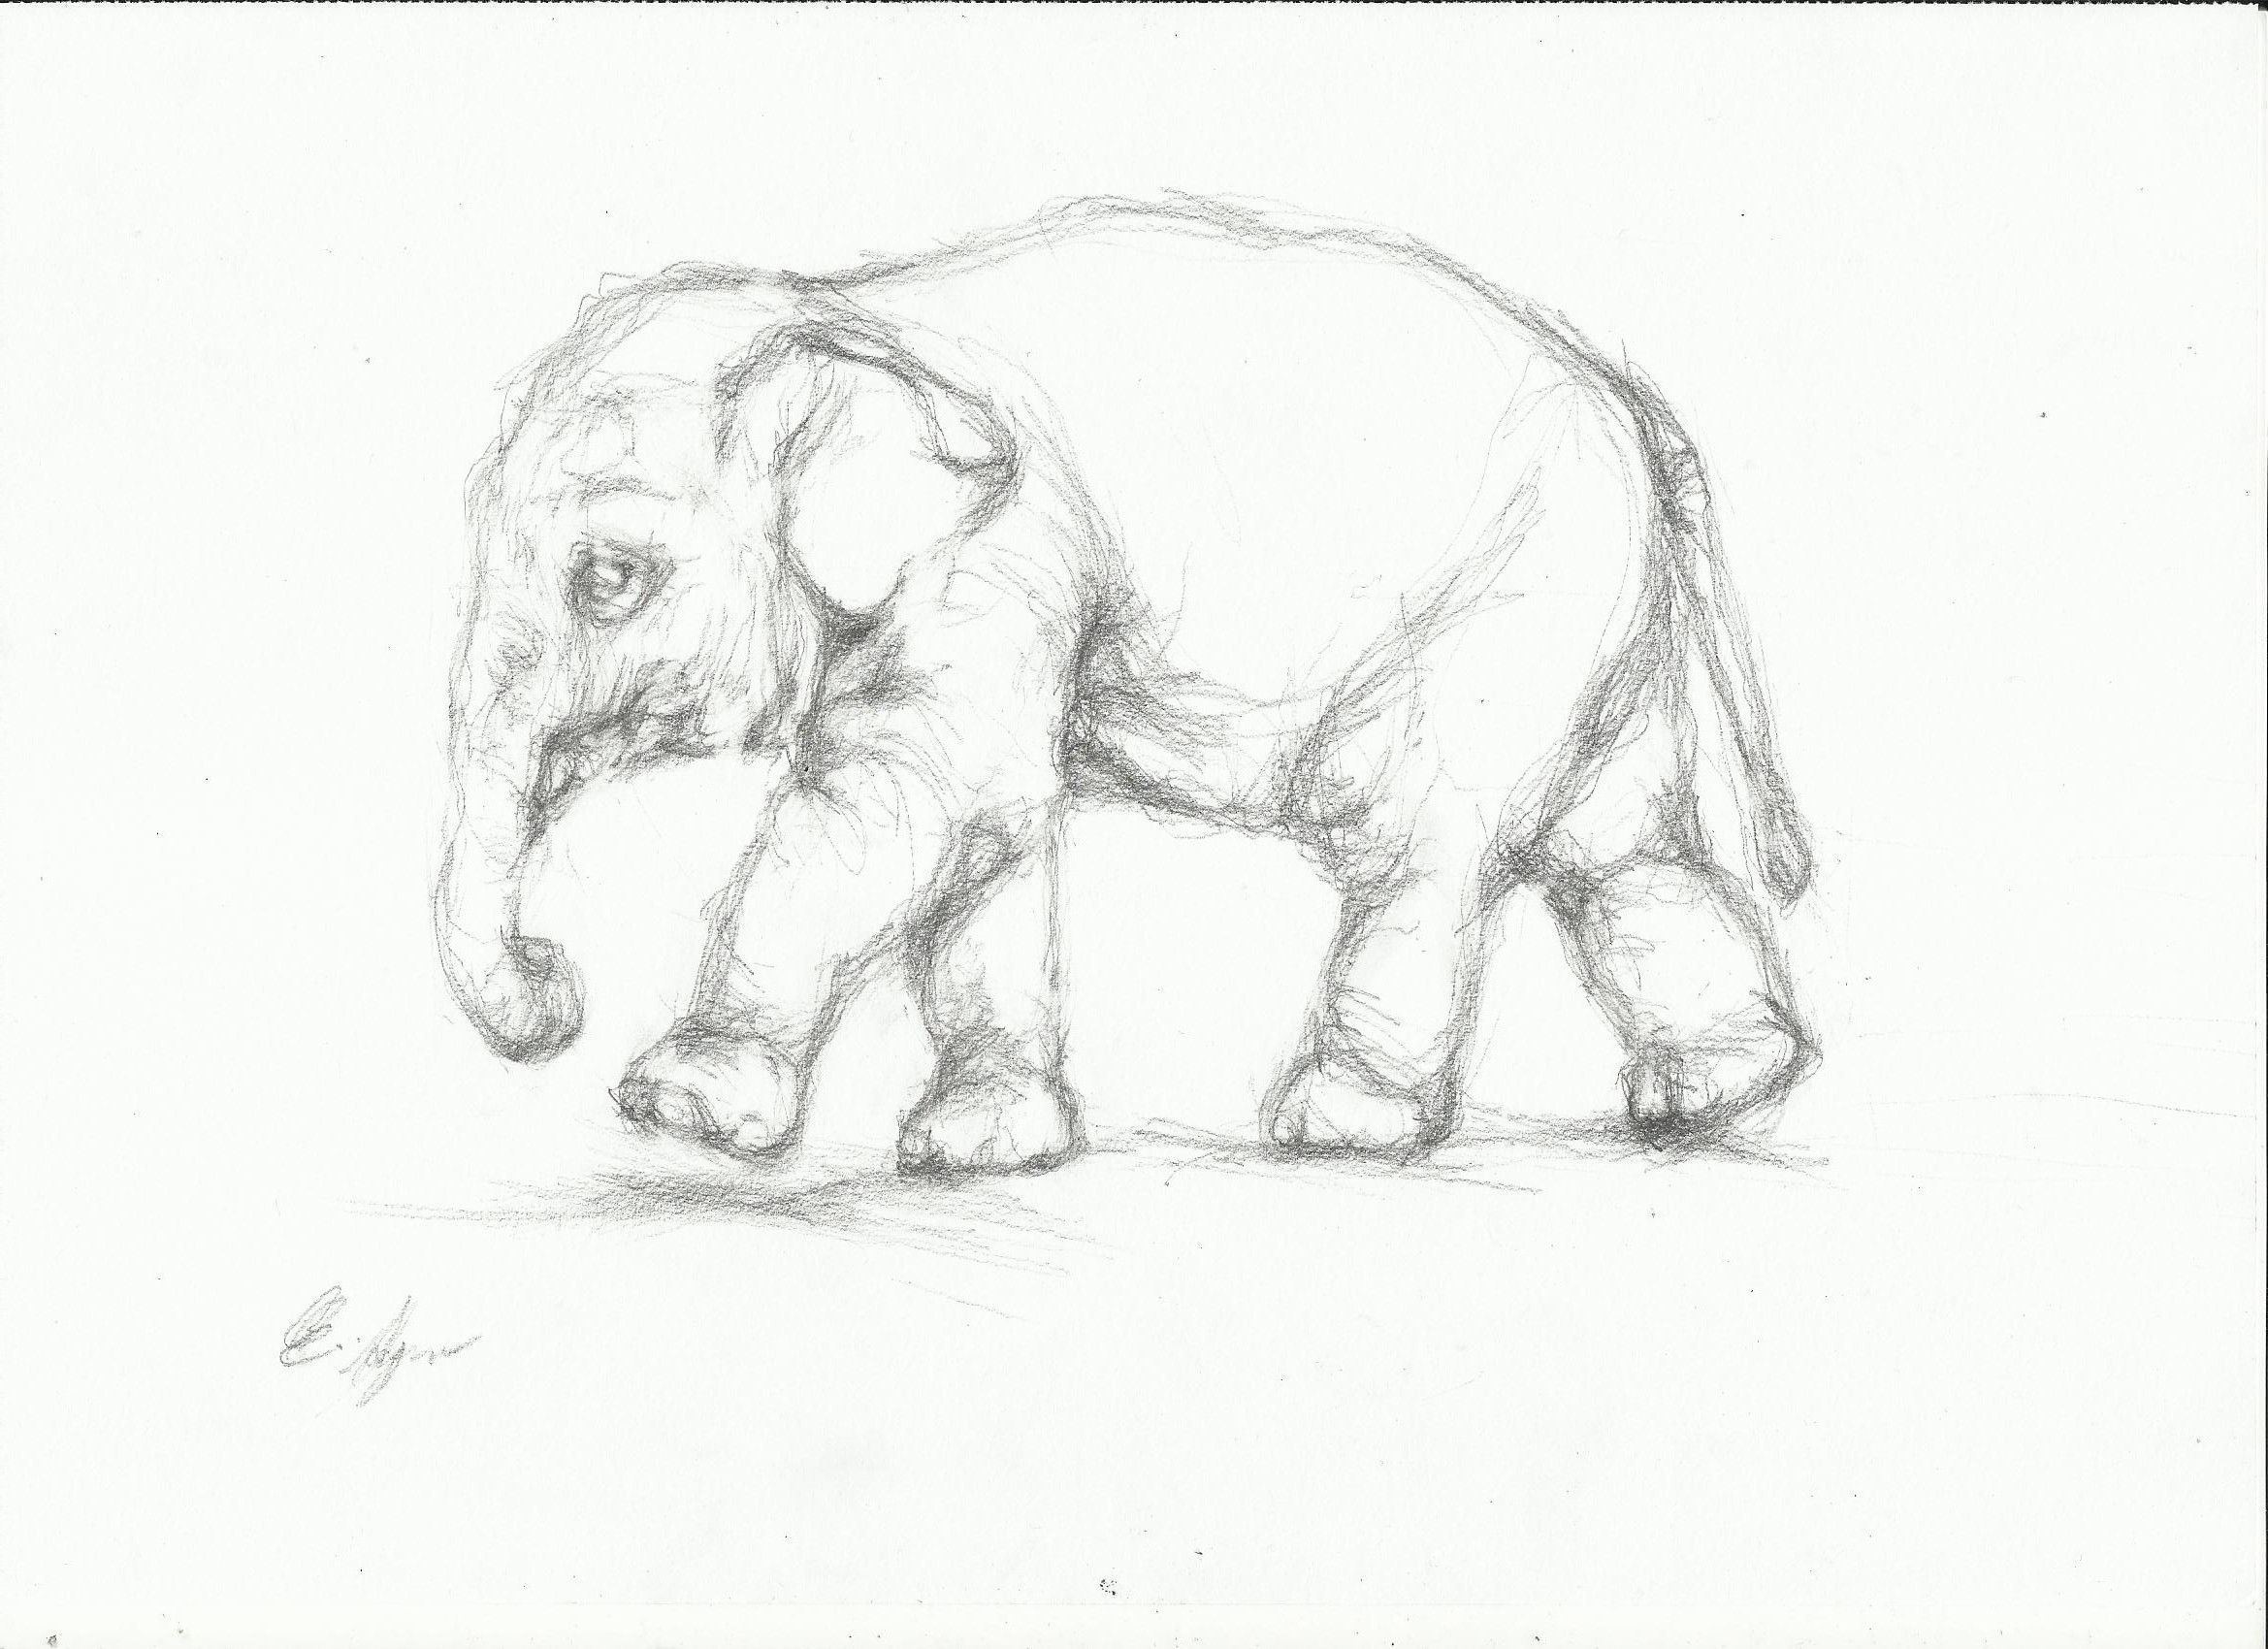 2338x1700 Pencil Sketch Of Elephant Cartoon Pencil Drawing Picture Animals